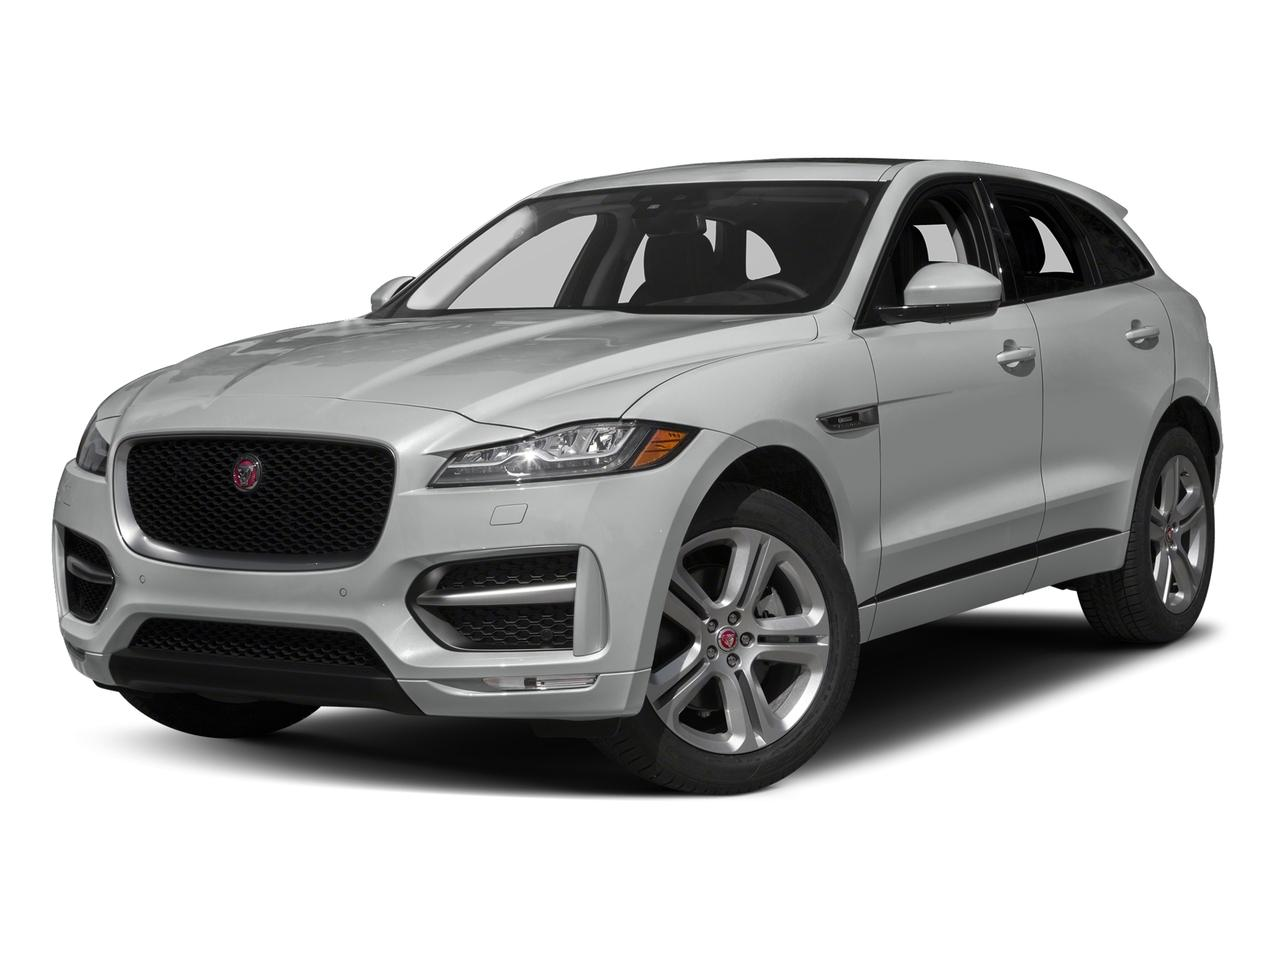 2017 Jaguar F-PACE Vehicle Photo in Austin, TX 78759